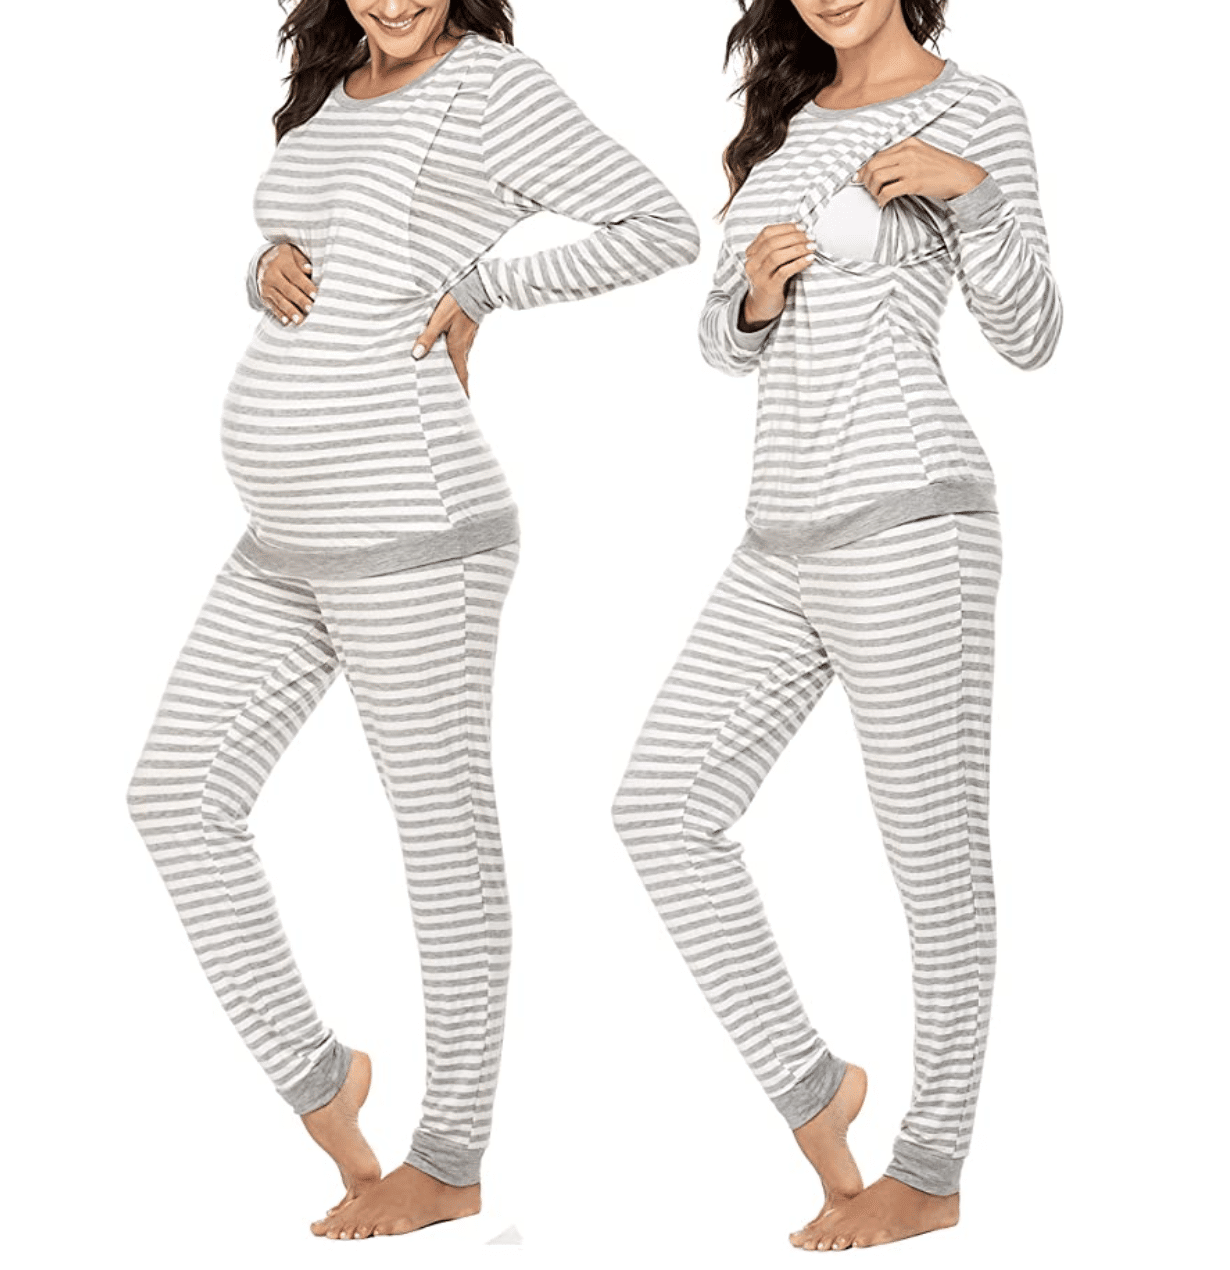 gifts-for-pregnant-women-pjs